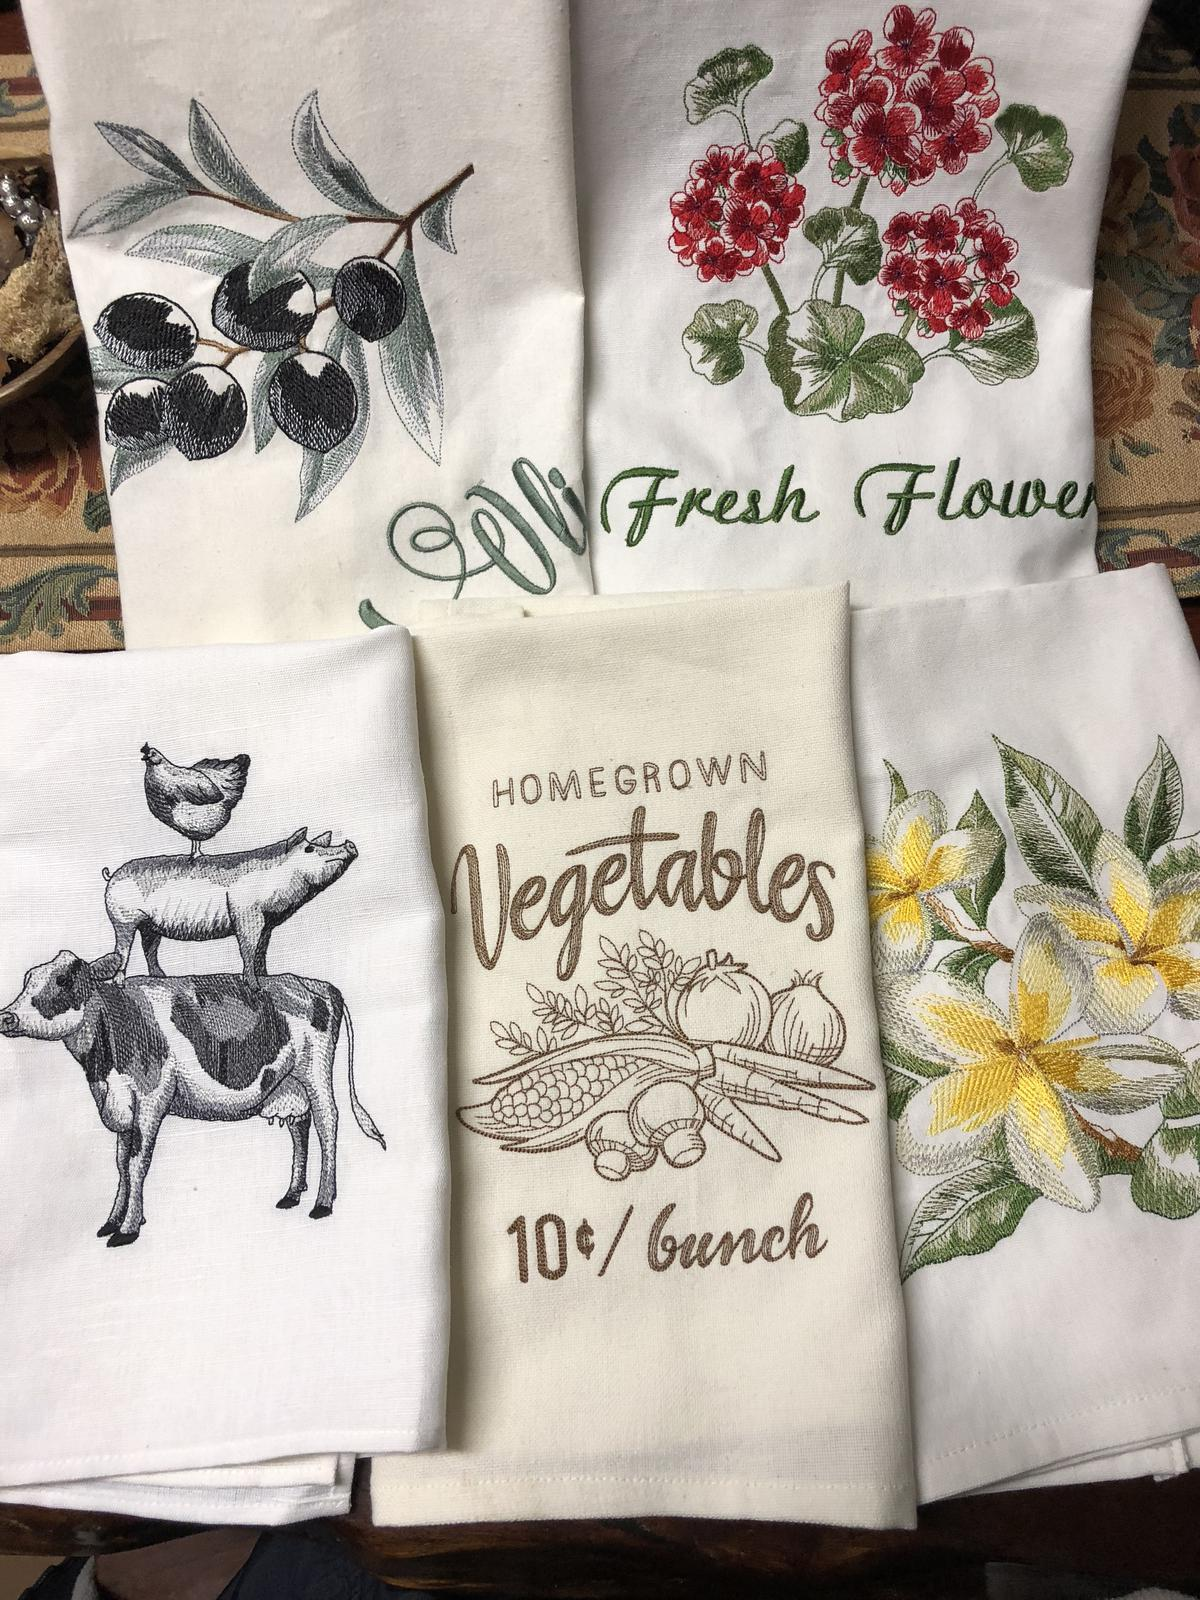 Designs for both tea towels and shopping bags